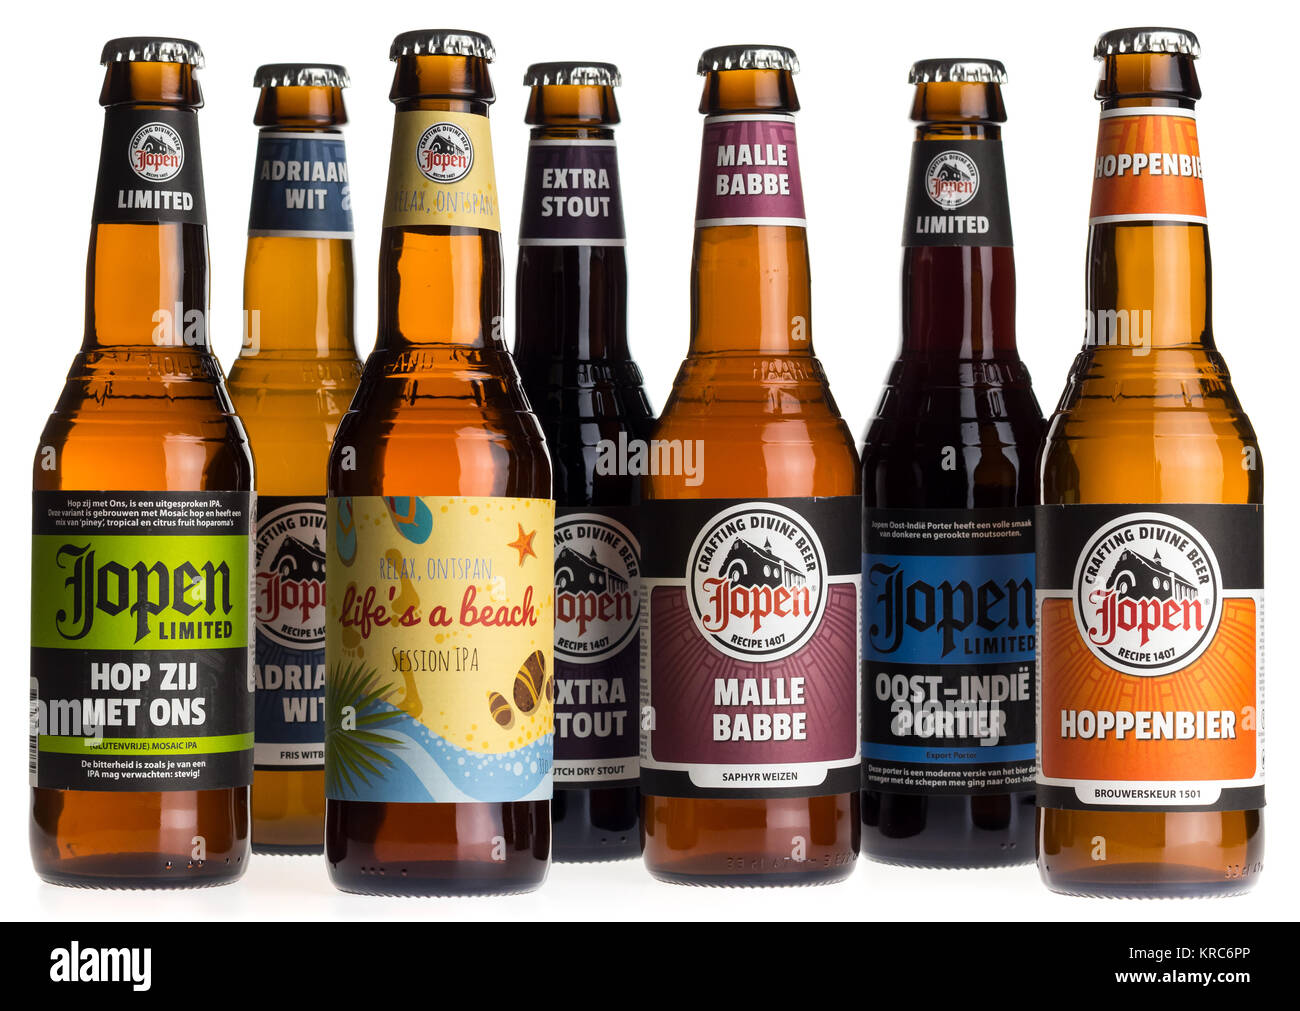 Collection of Dutch craft beers by Jopen brewery in Haarlem, The Netherlands - Stock Image